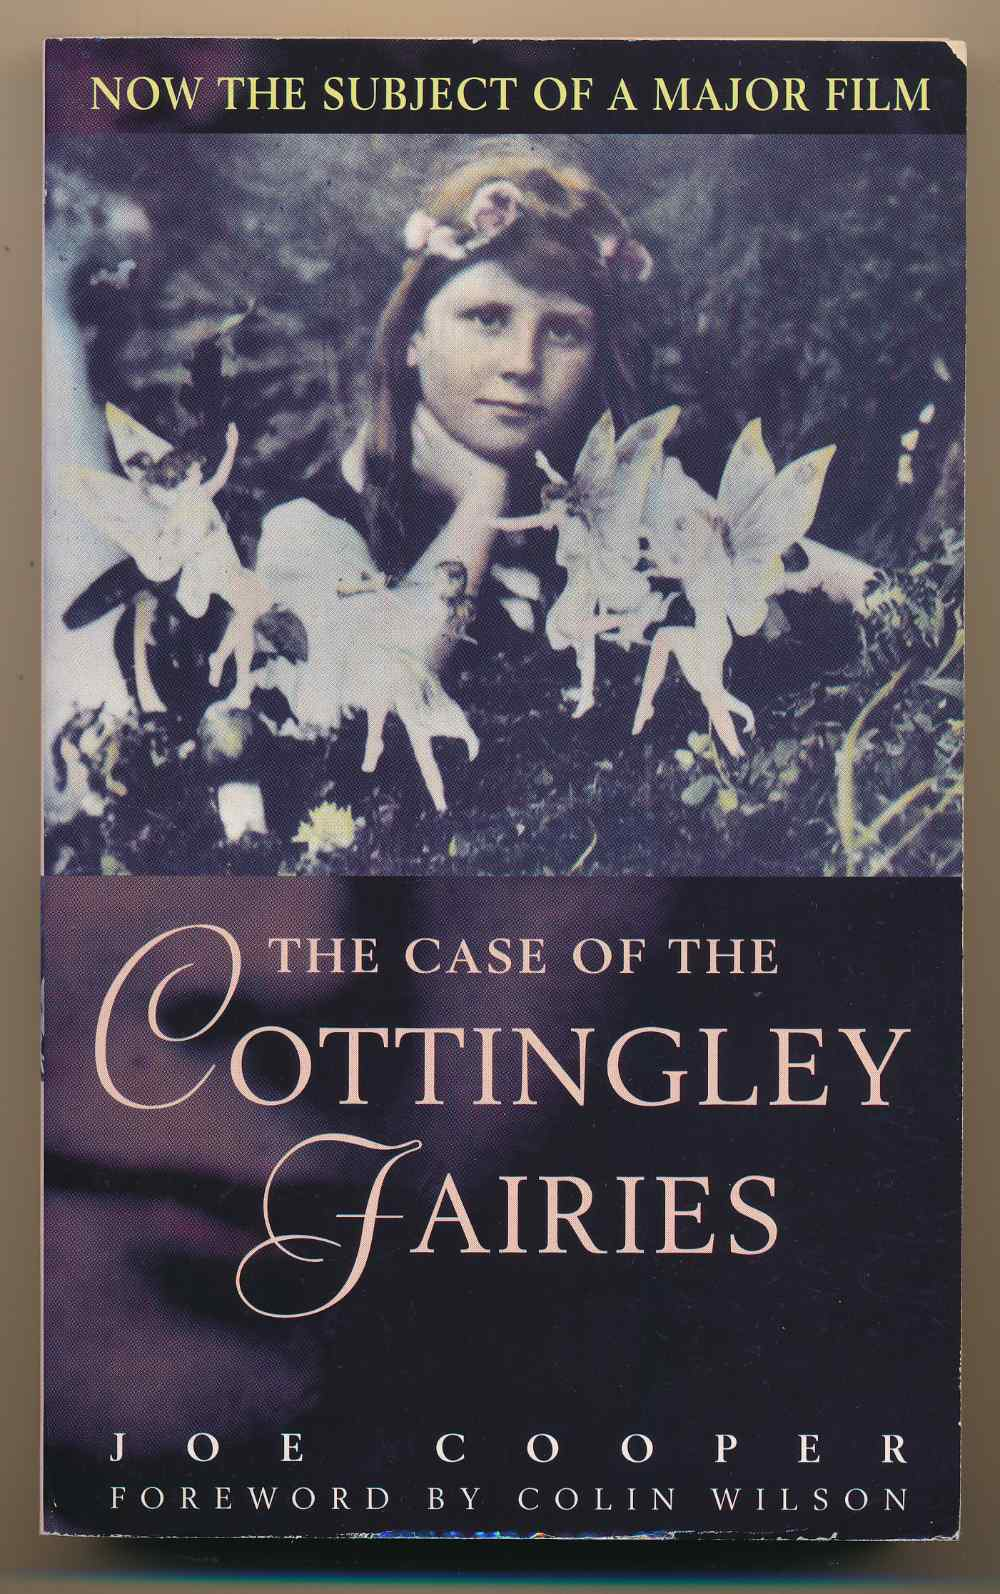 The case of the Cottingley fairies